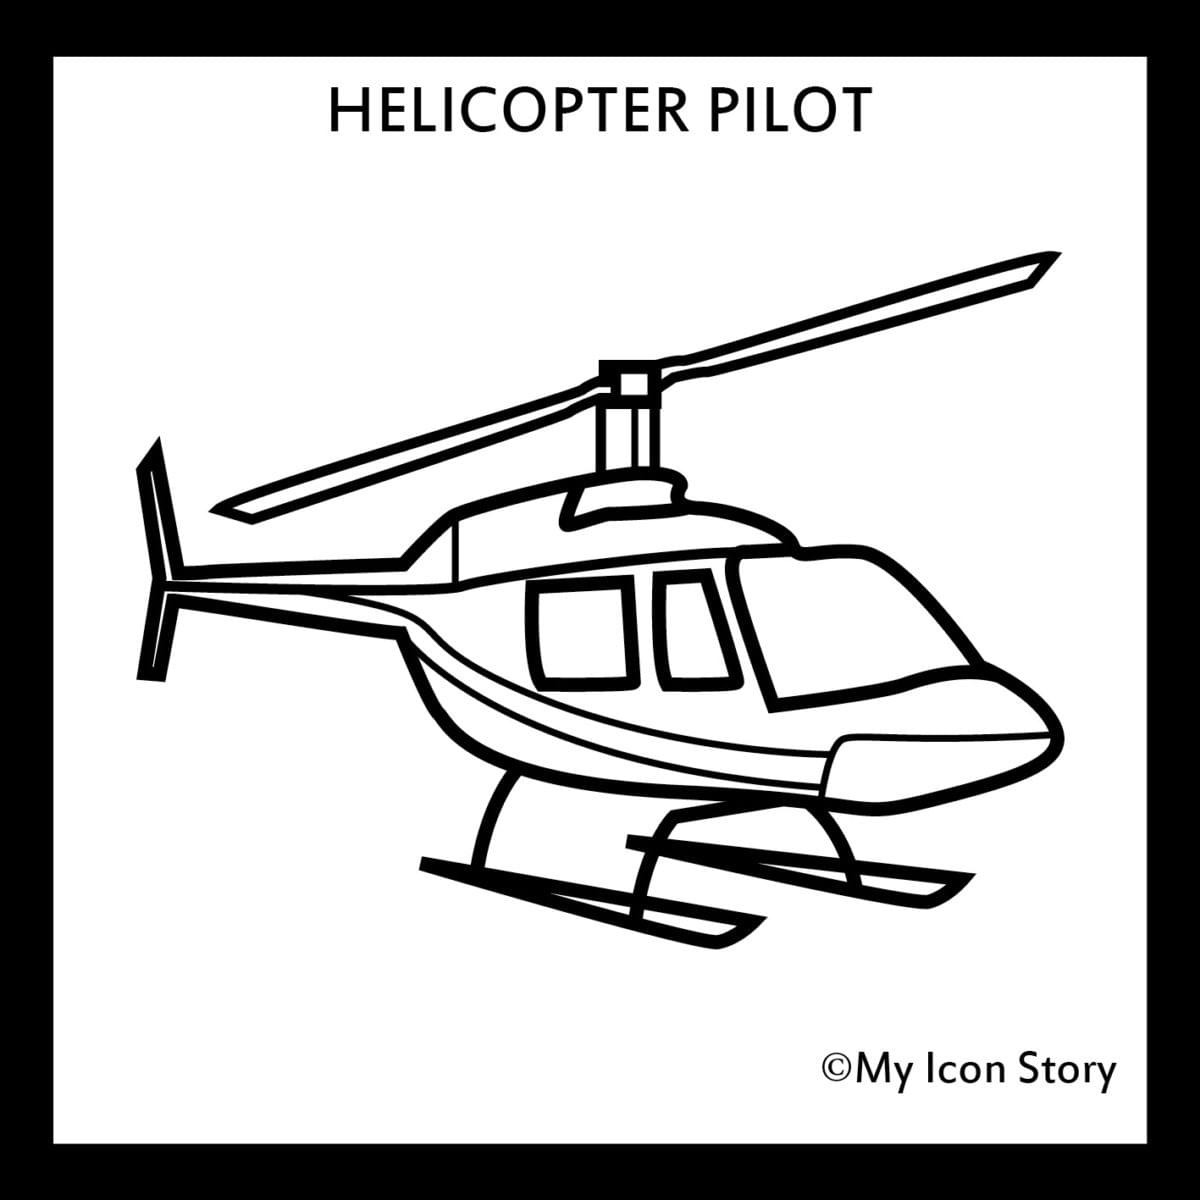 my icon story, sallee poinsette-nash, founder story, helicopter pilot, helicopter, icon